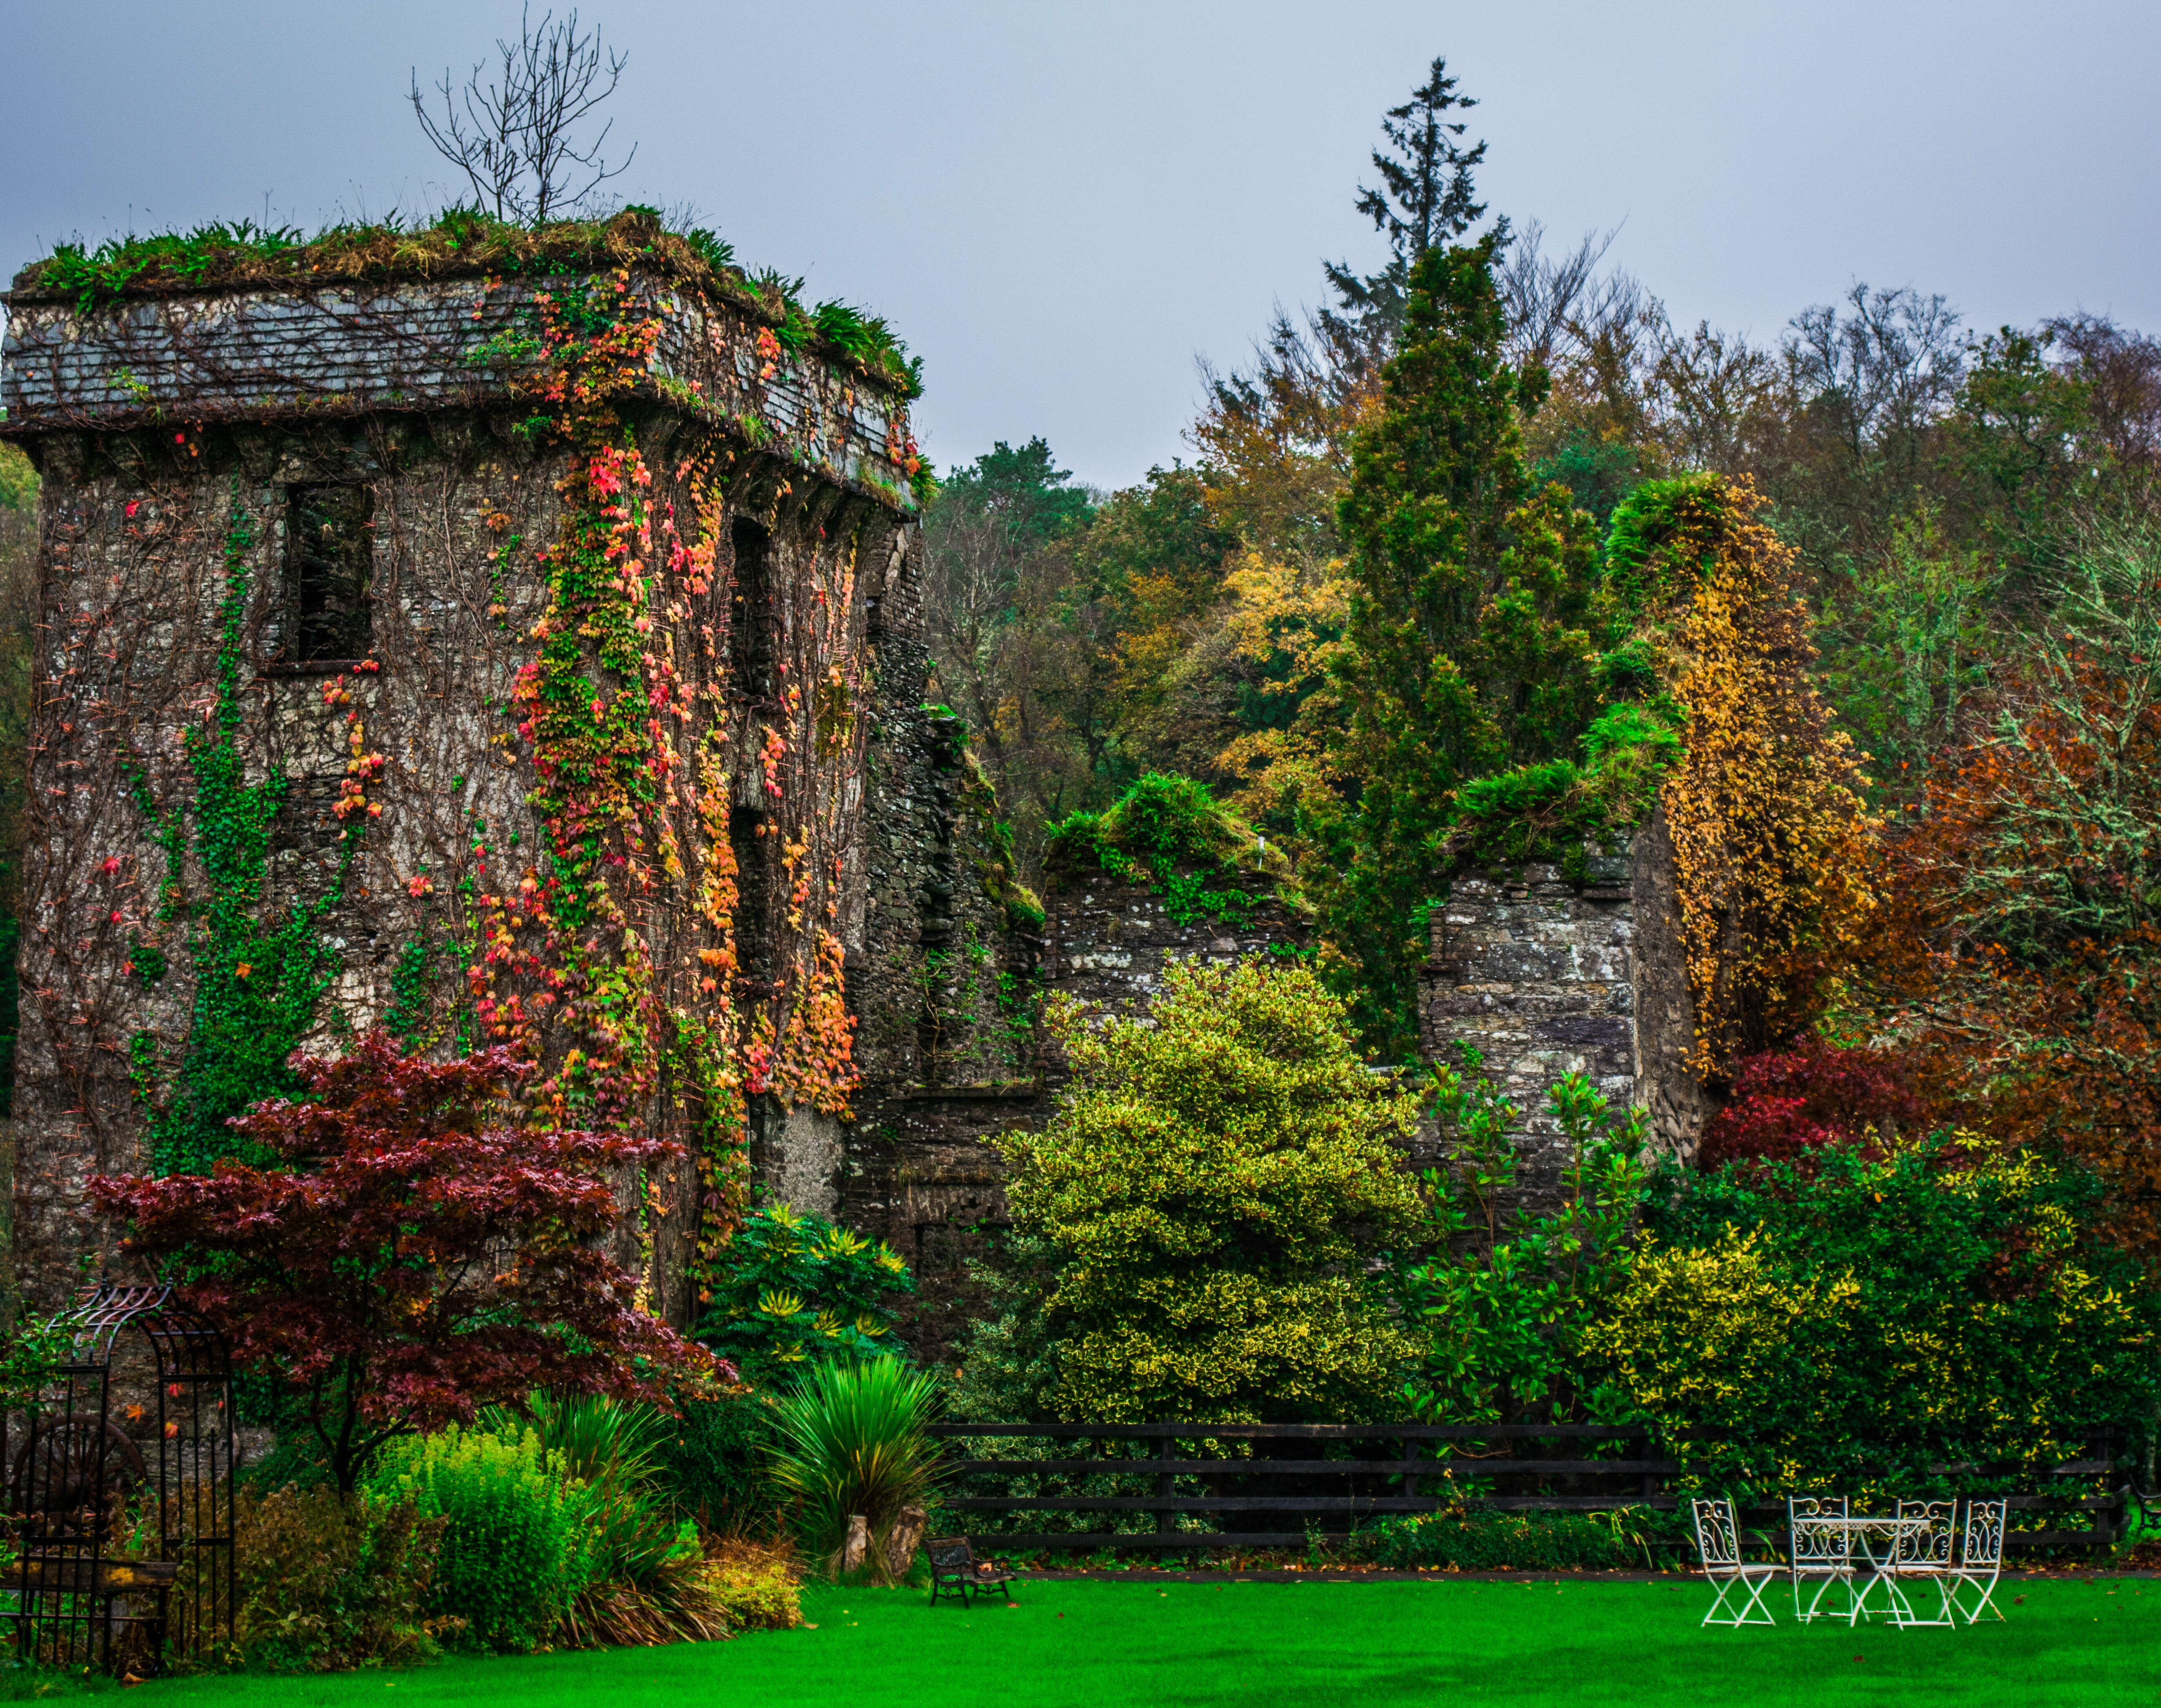 Photo of Forest, Architecture, Lawn, Wall, Trees, HQ Photo